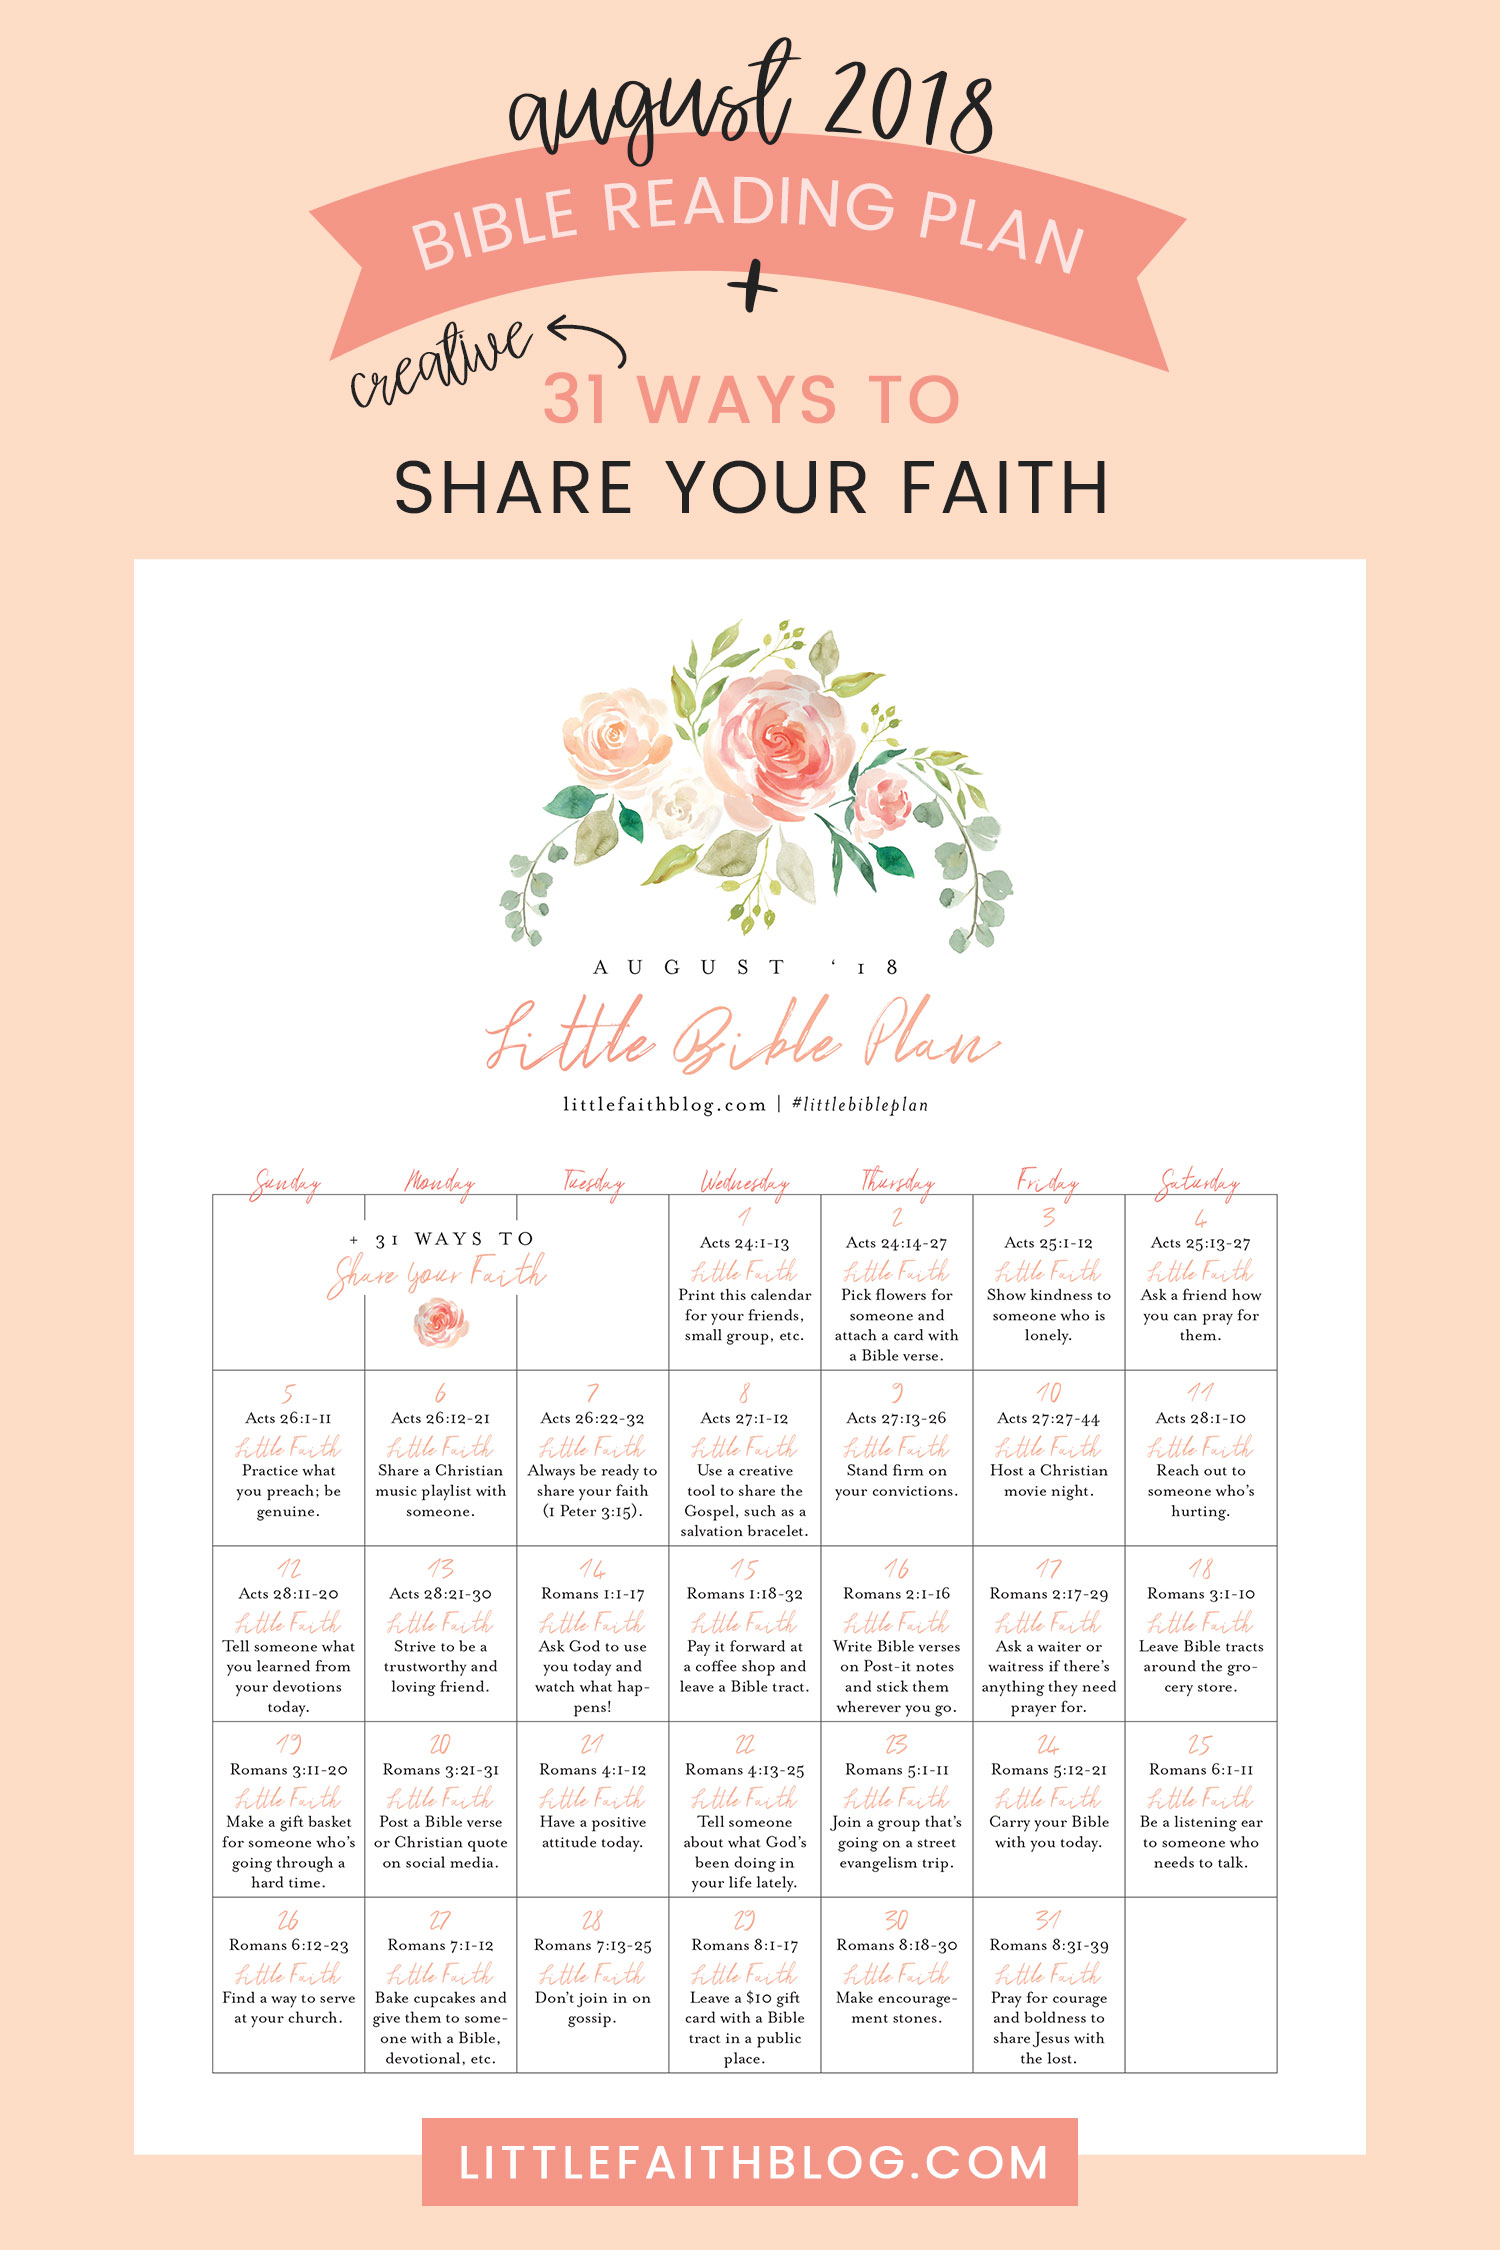 August 2018 Bible Reading Plan 31 Creative Ways To Share Your Faith